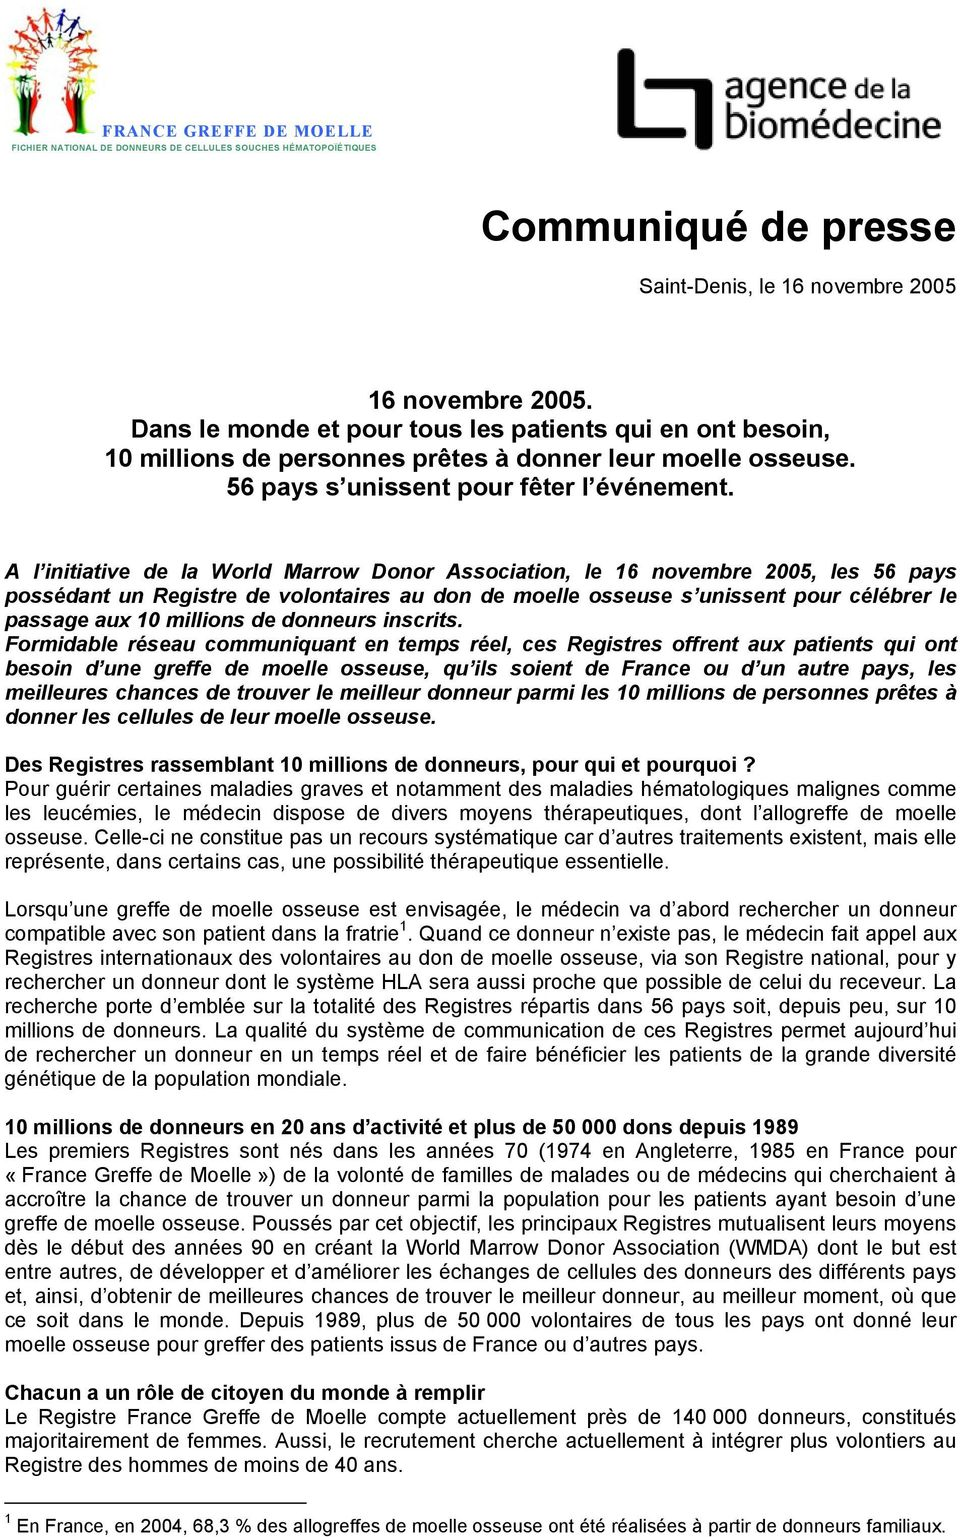 A l initiative de la World Marrow Donor Association, le 16 novembre 2005, les 56 pays possédant un Registre de volontaires au don de moelle osseuse s unissent pour célébrer le passage aux 10 millions